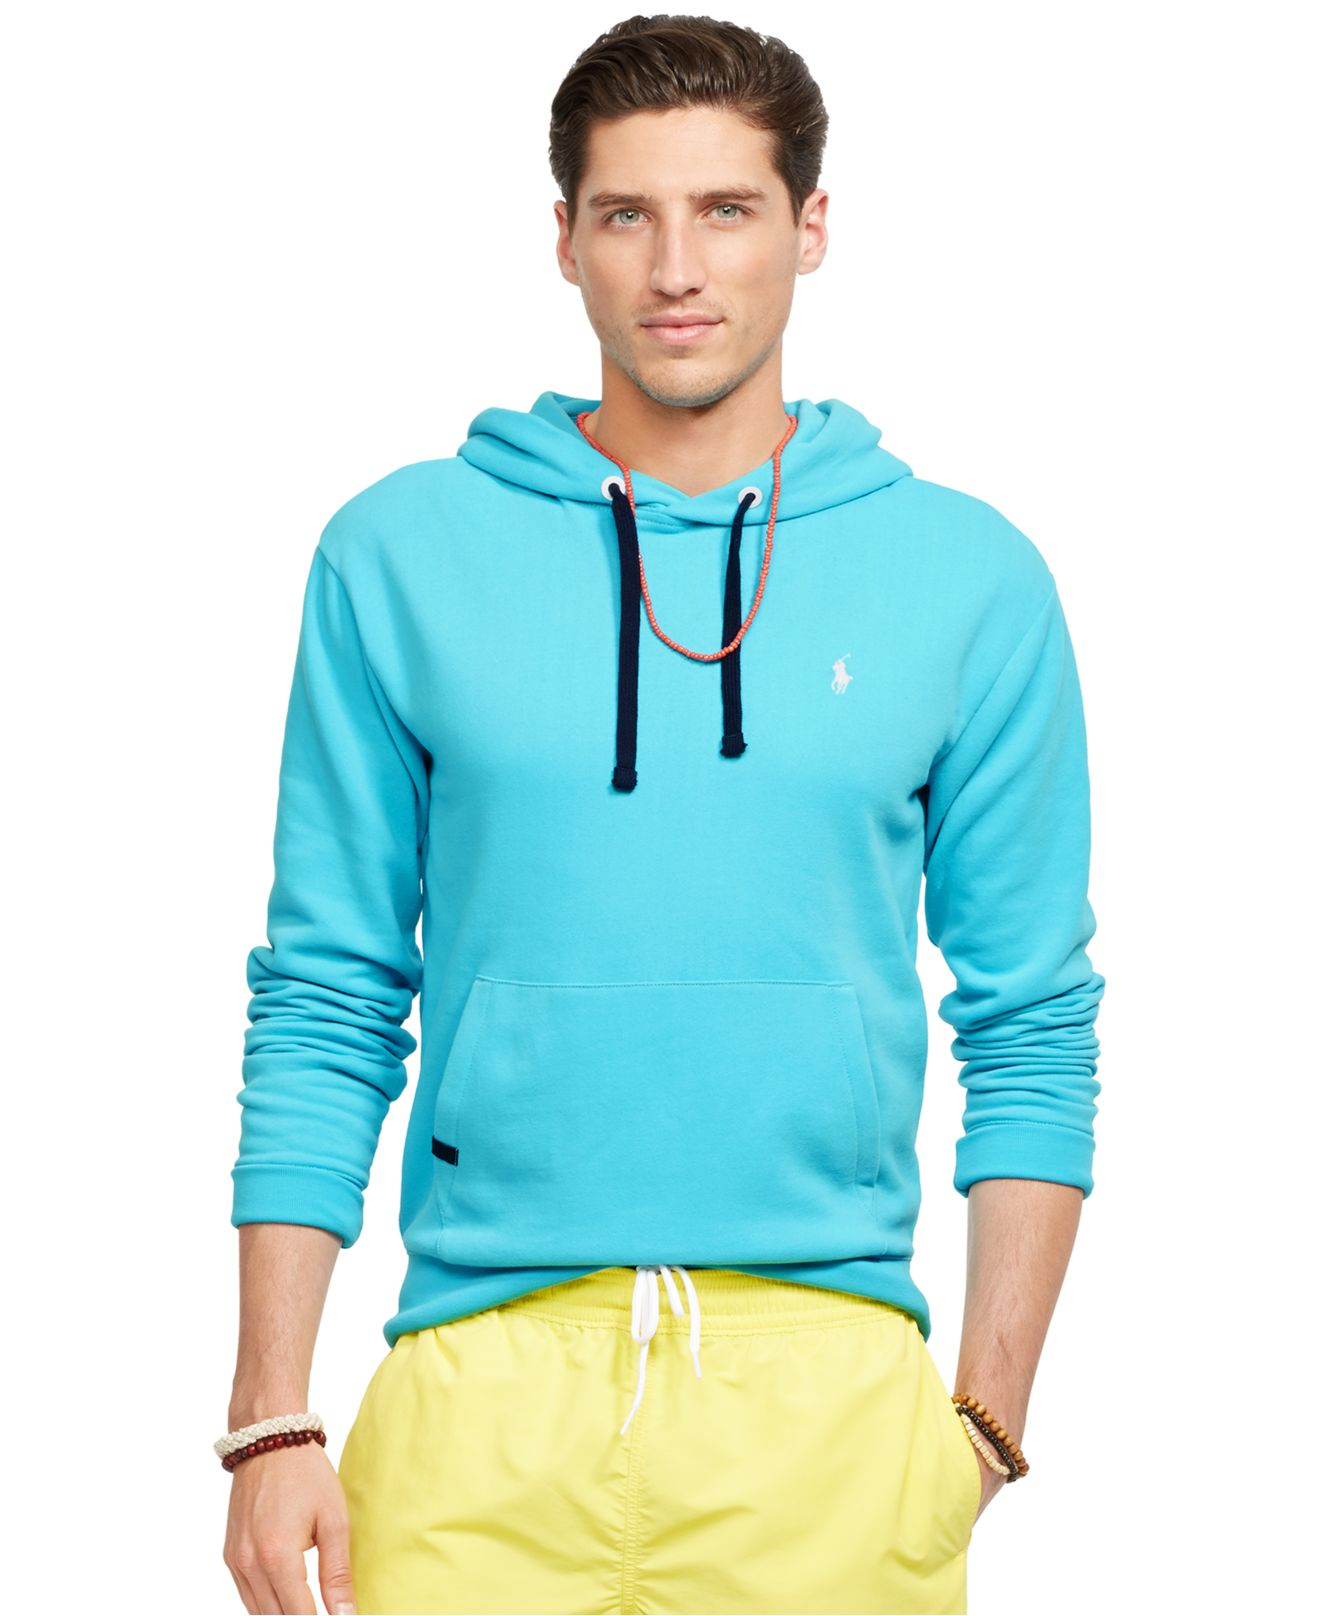 polo ralph lauren performance fleece hoodie in blue for men lyst. Black Bedroom Furniture Sets. Home Design Ideas